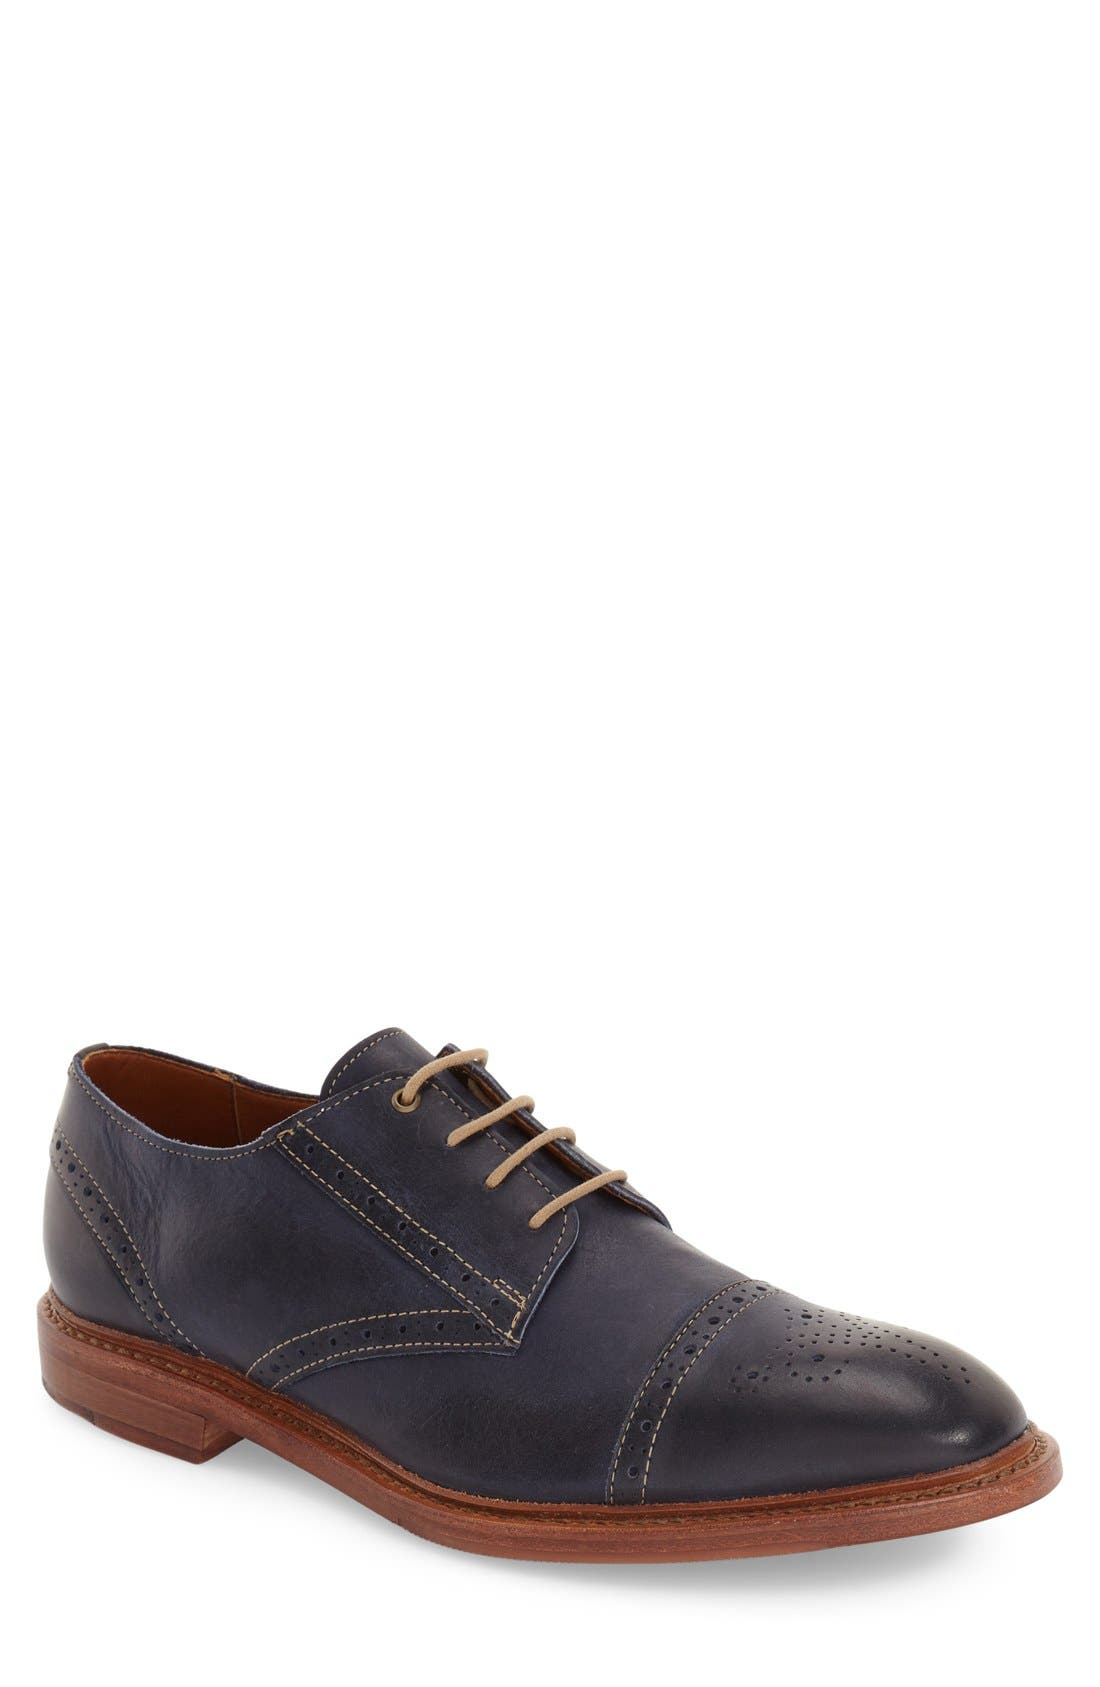 Allen Edmonds 'Bainbridge' Cap Toe Derby (Men)